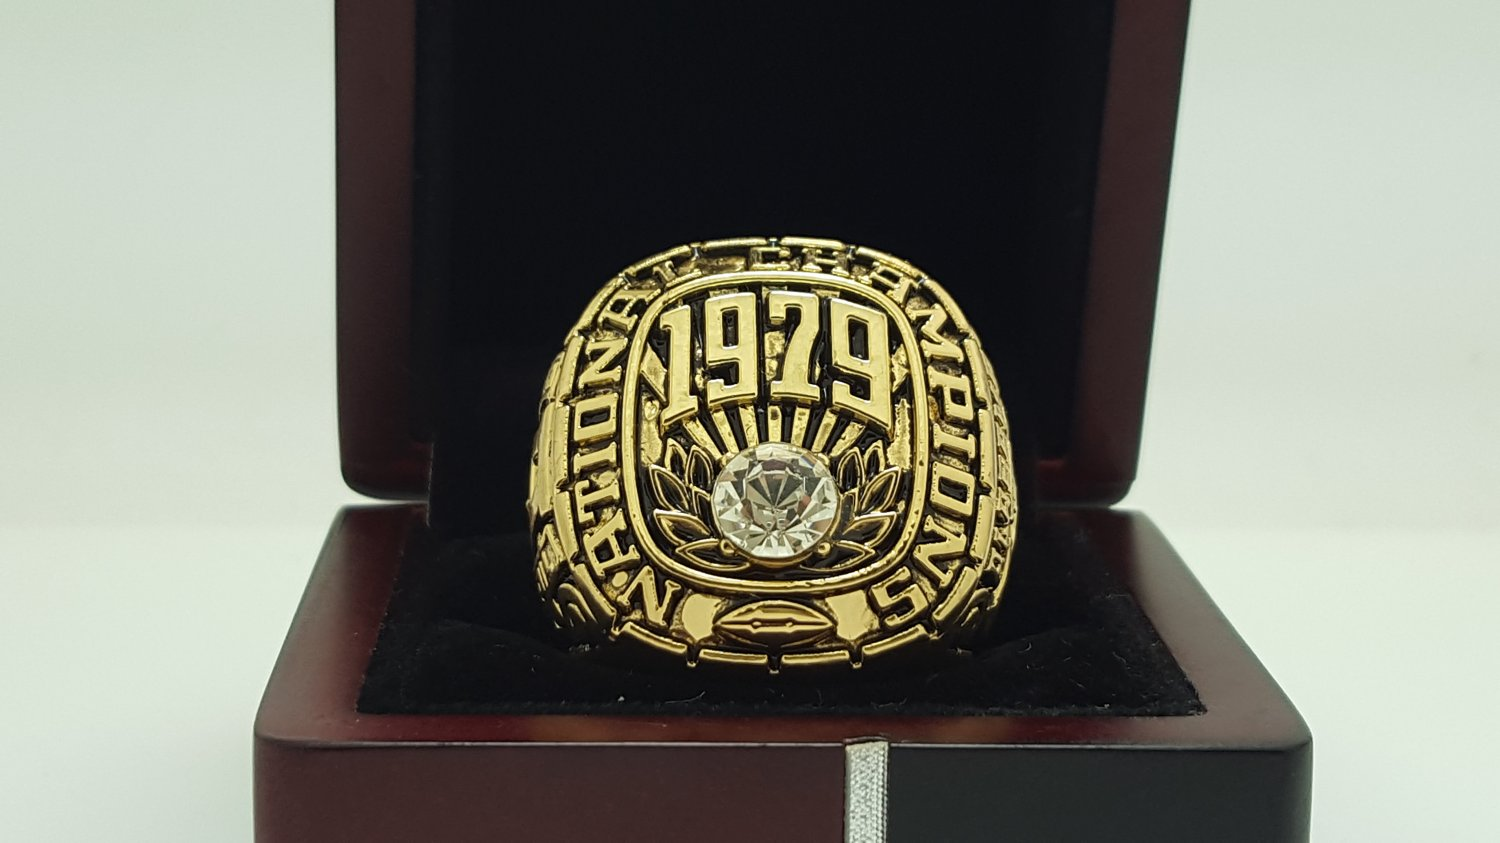 1979 Alabama Crimson SEC Football National Championship ring replica size 11 US solid back